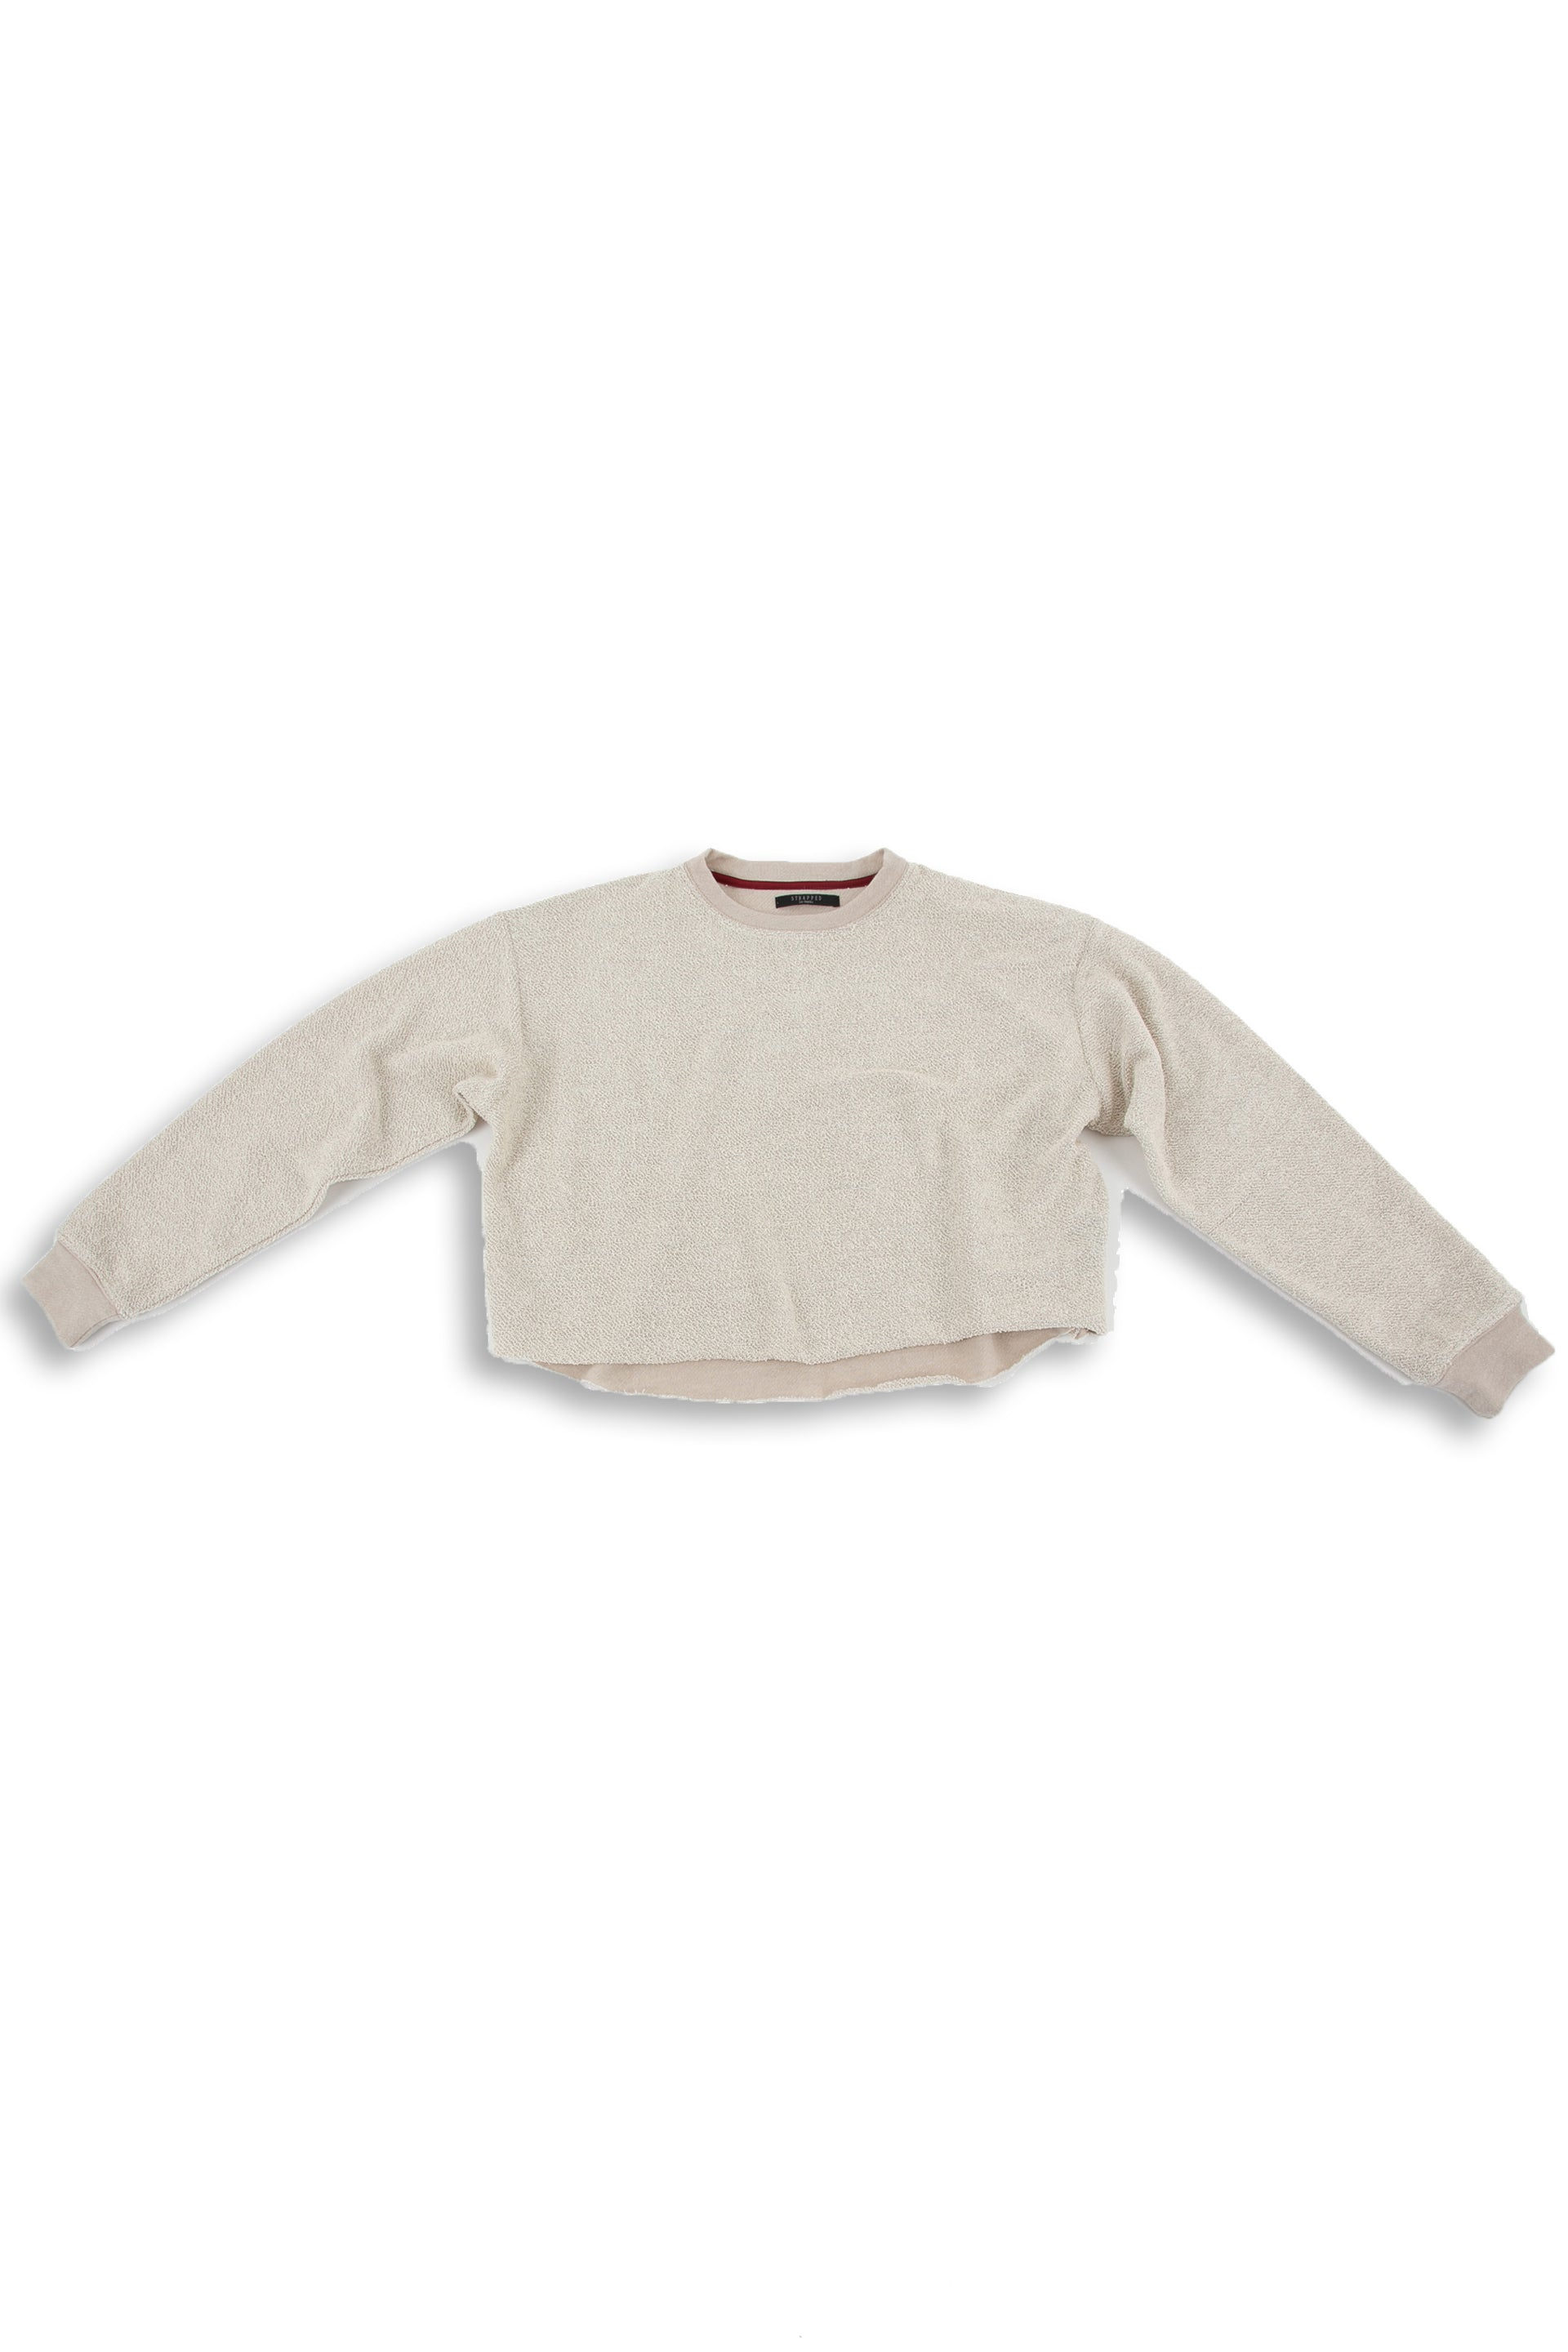 Front of Cropped Sweater in Taupe Heather